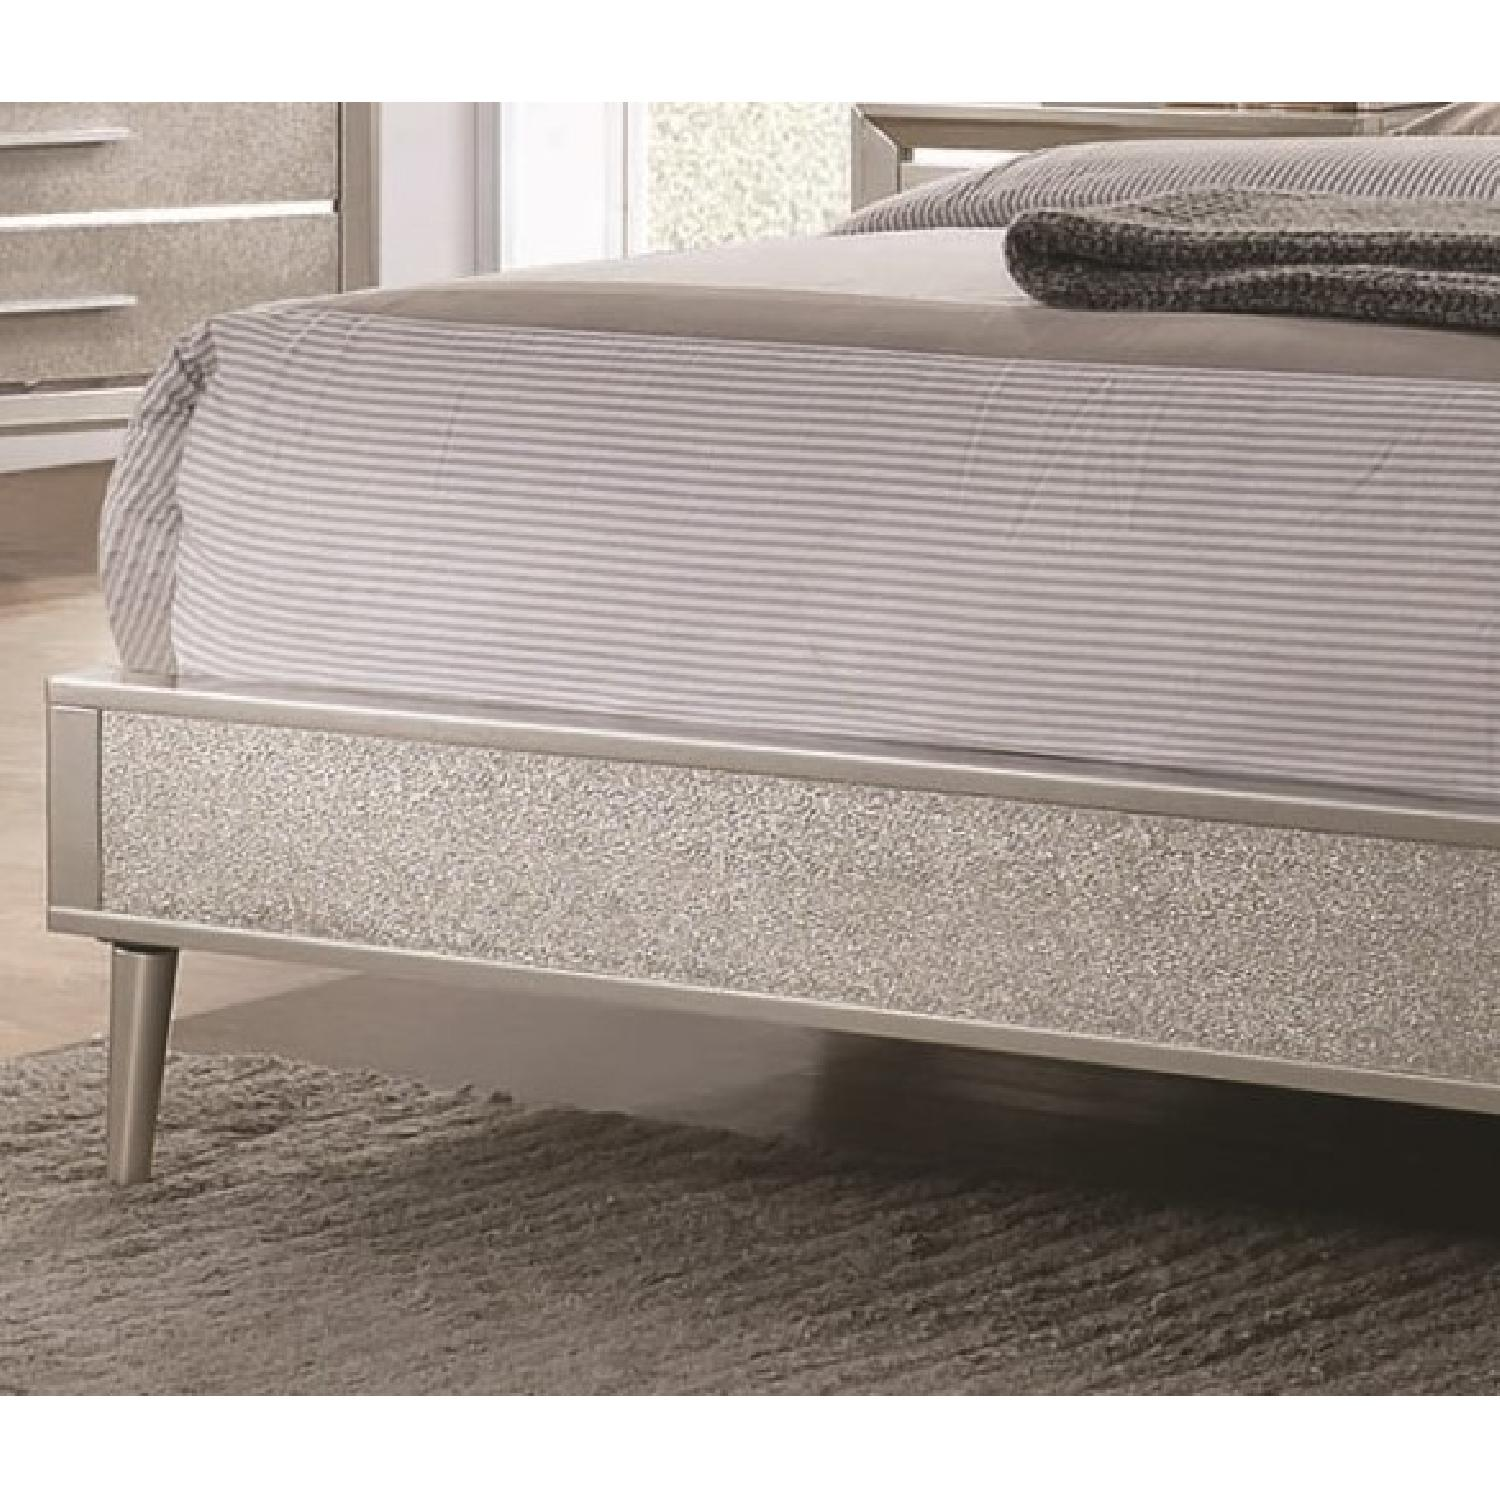 Mid Century Style King Bed in Metallic Silver Glitter Design - image-9